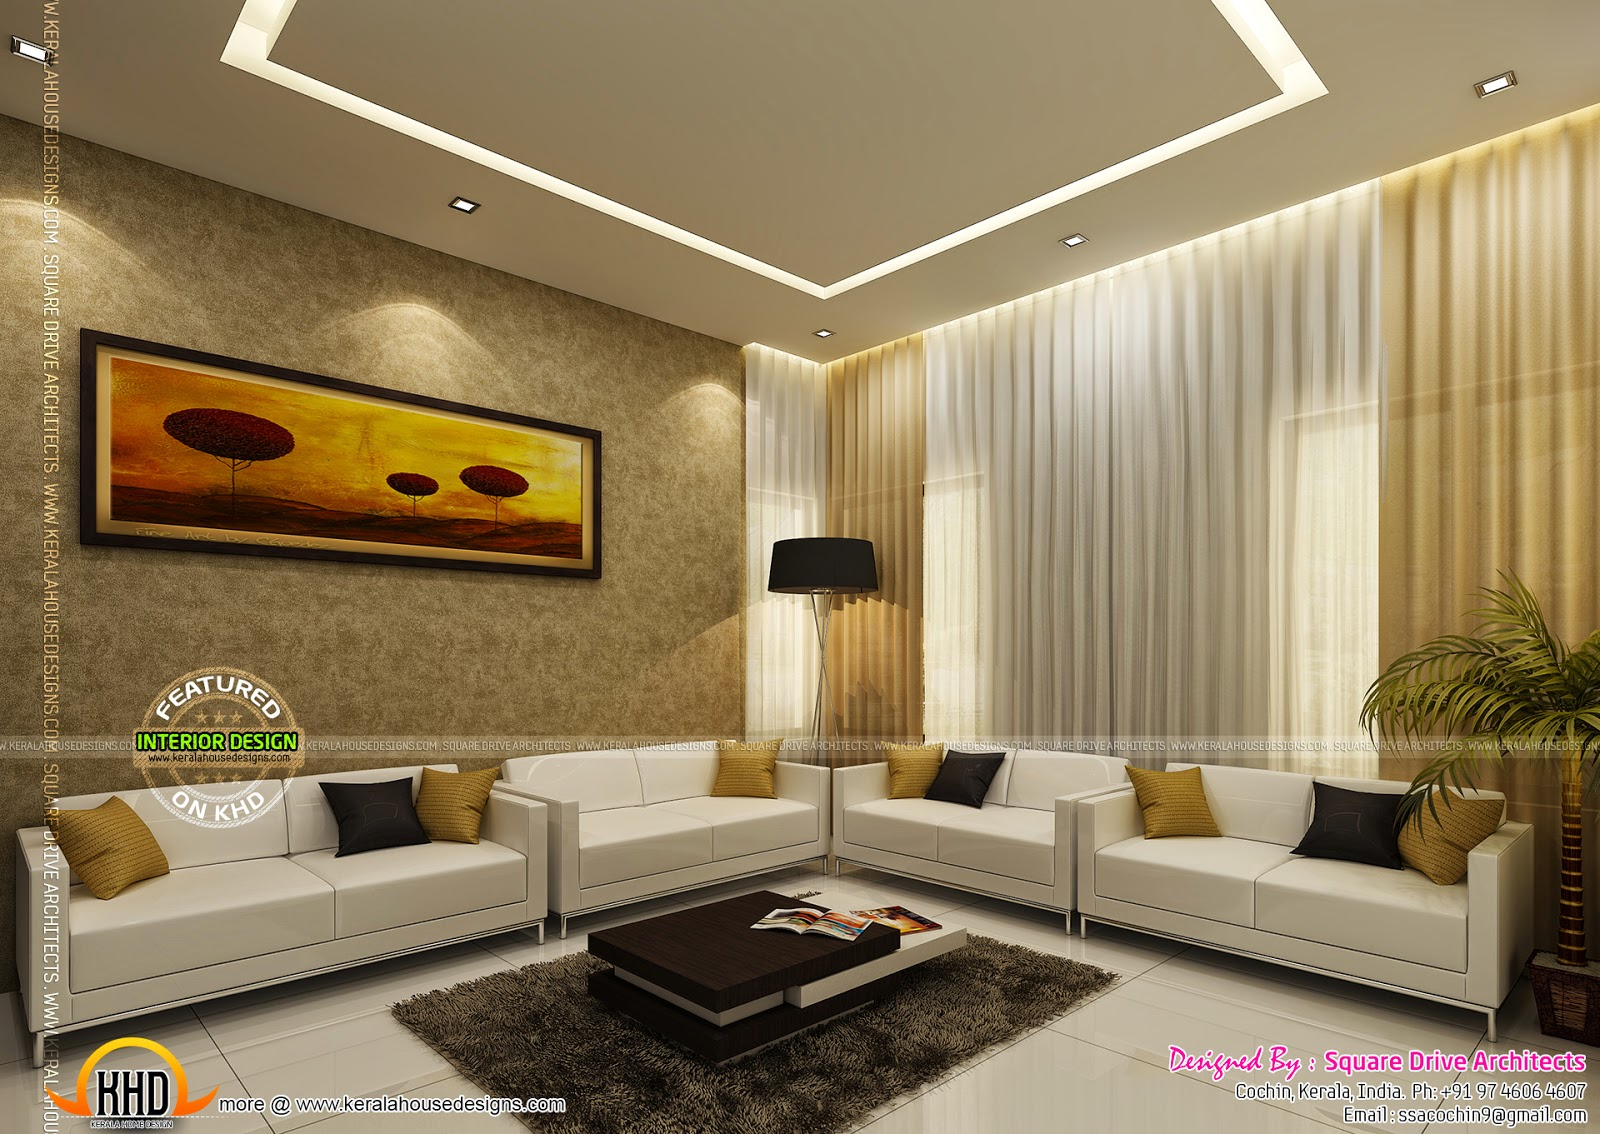 Home interiors designs kerala home design and floor plans for Living room design ideas kerala